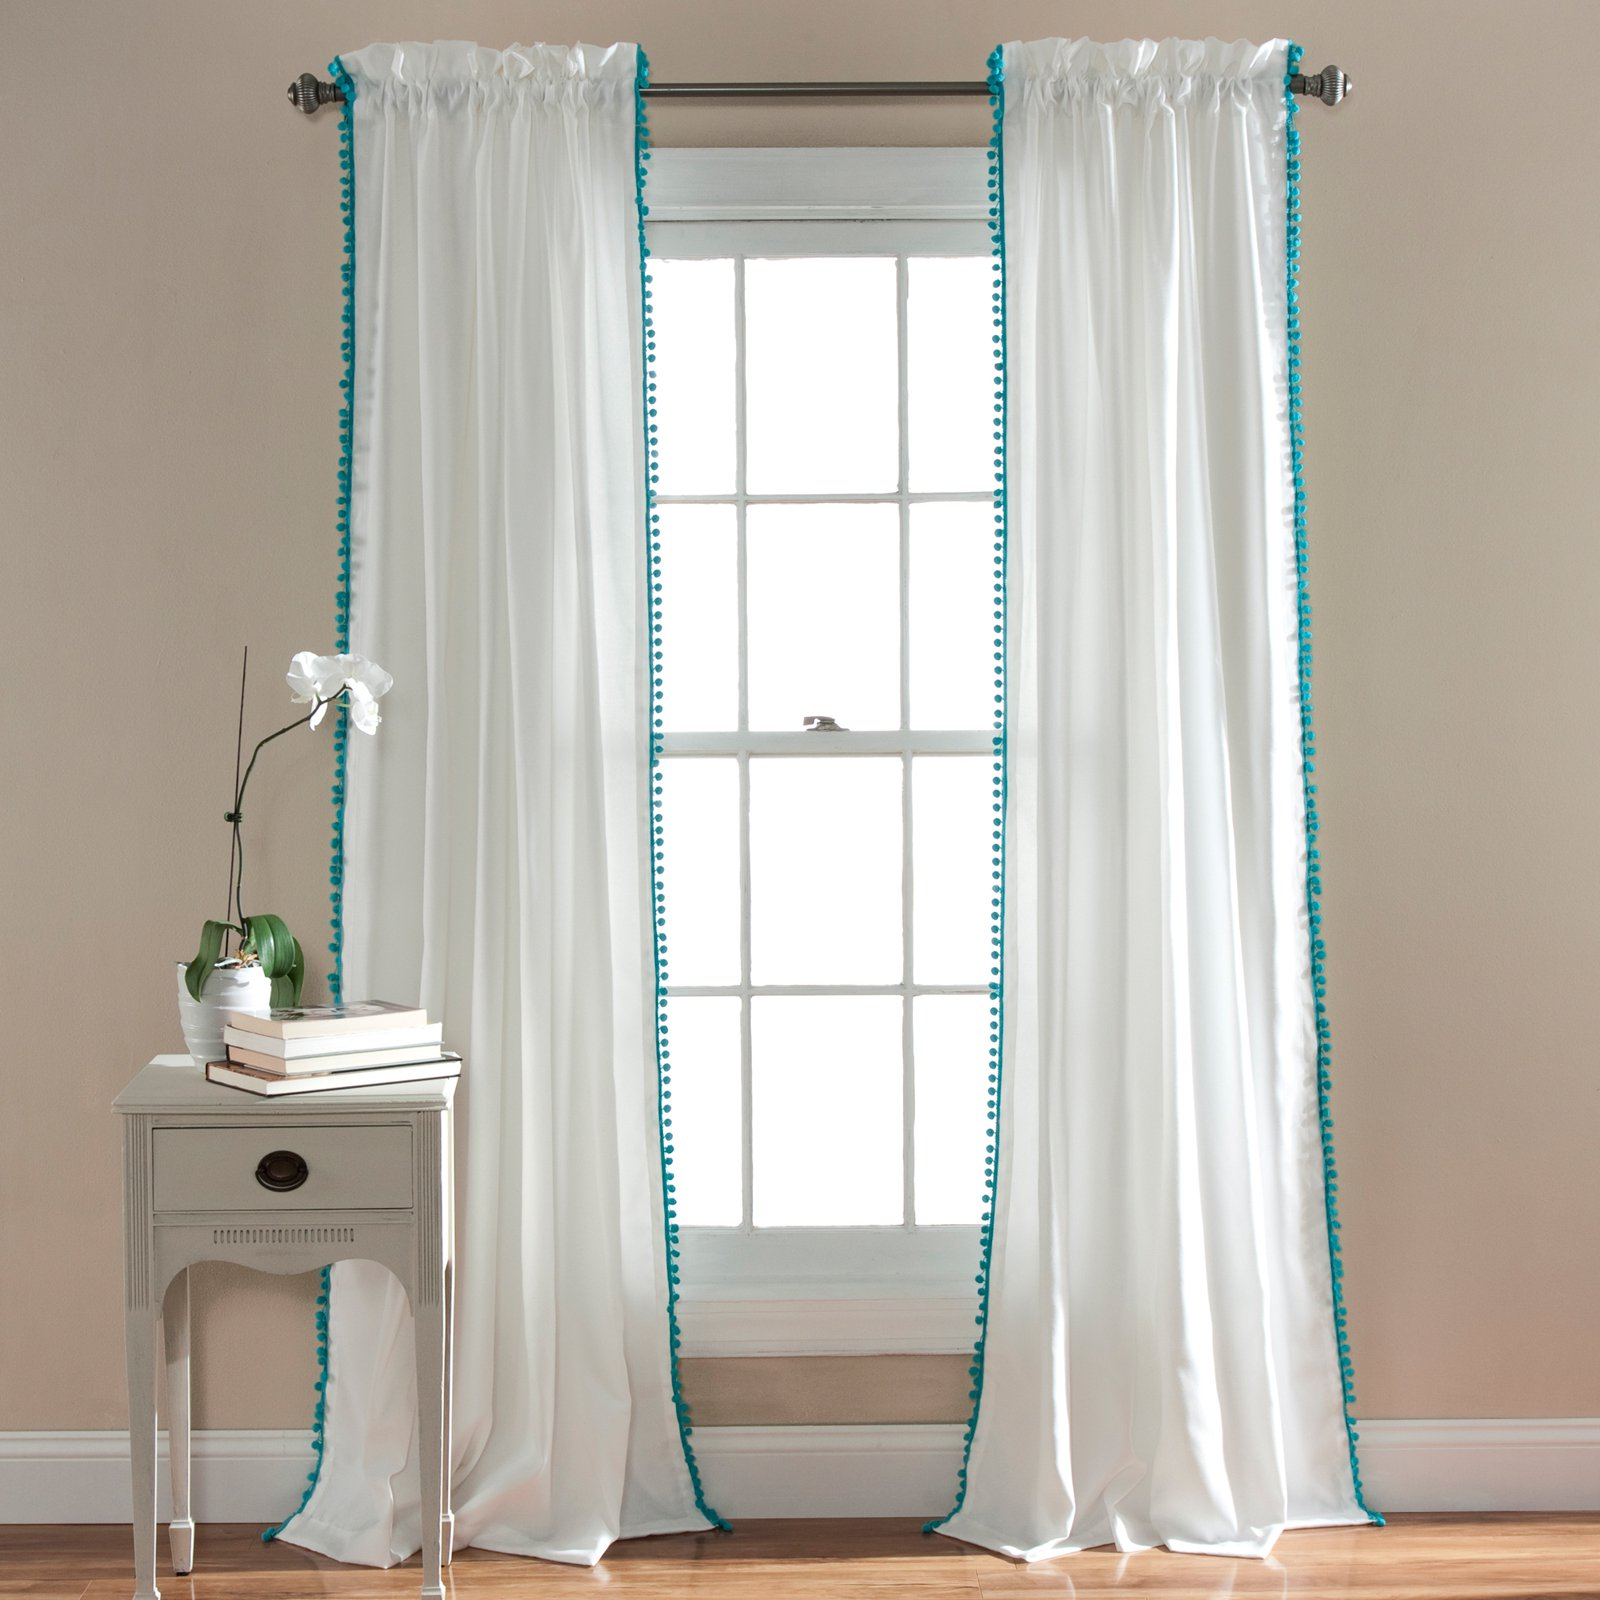 curtains grey circle jysk liner polyester tabs jofrid jacquard hidden panel mag curtain lined canada with